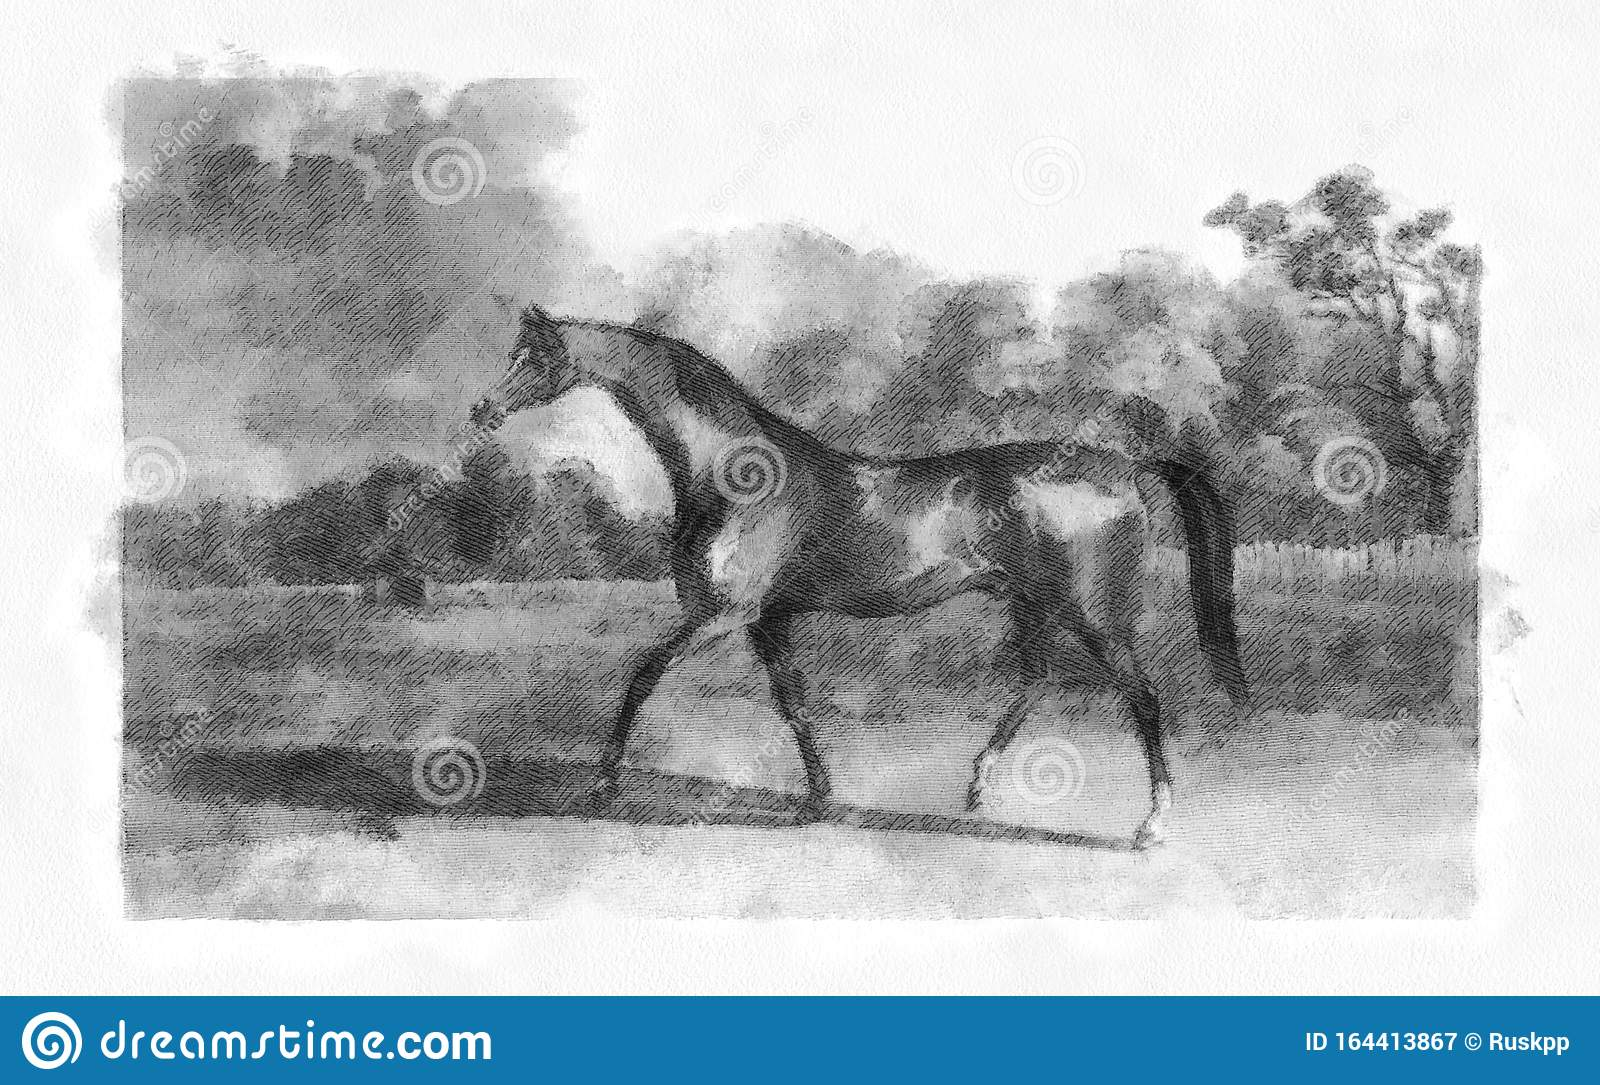 Illustration Of Horses Engraving Stock Illustration Illustration Of Engraving Race 164413867